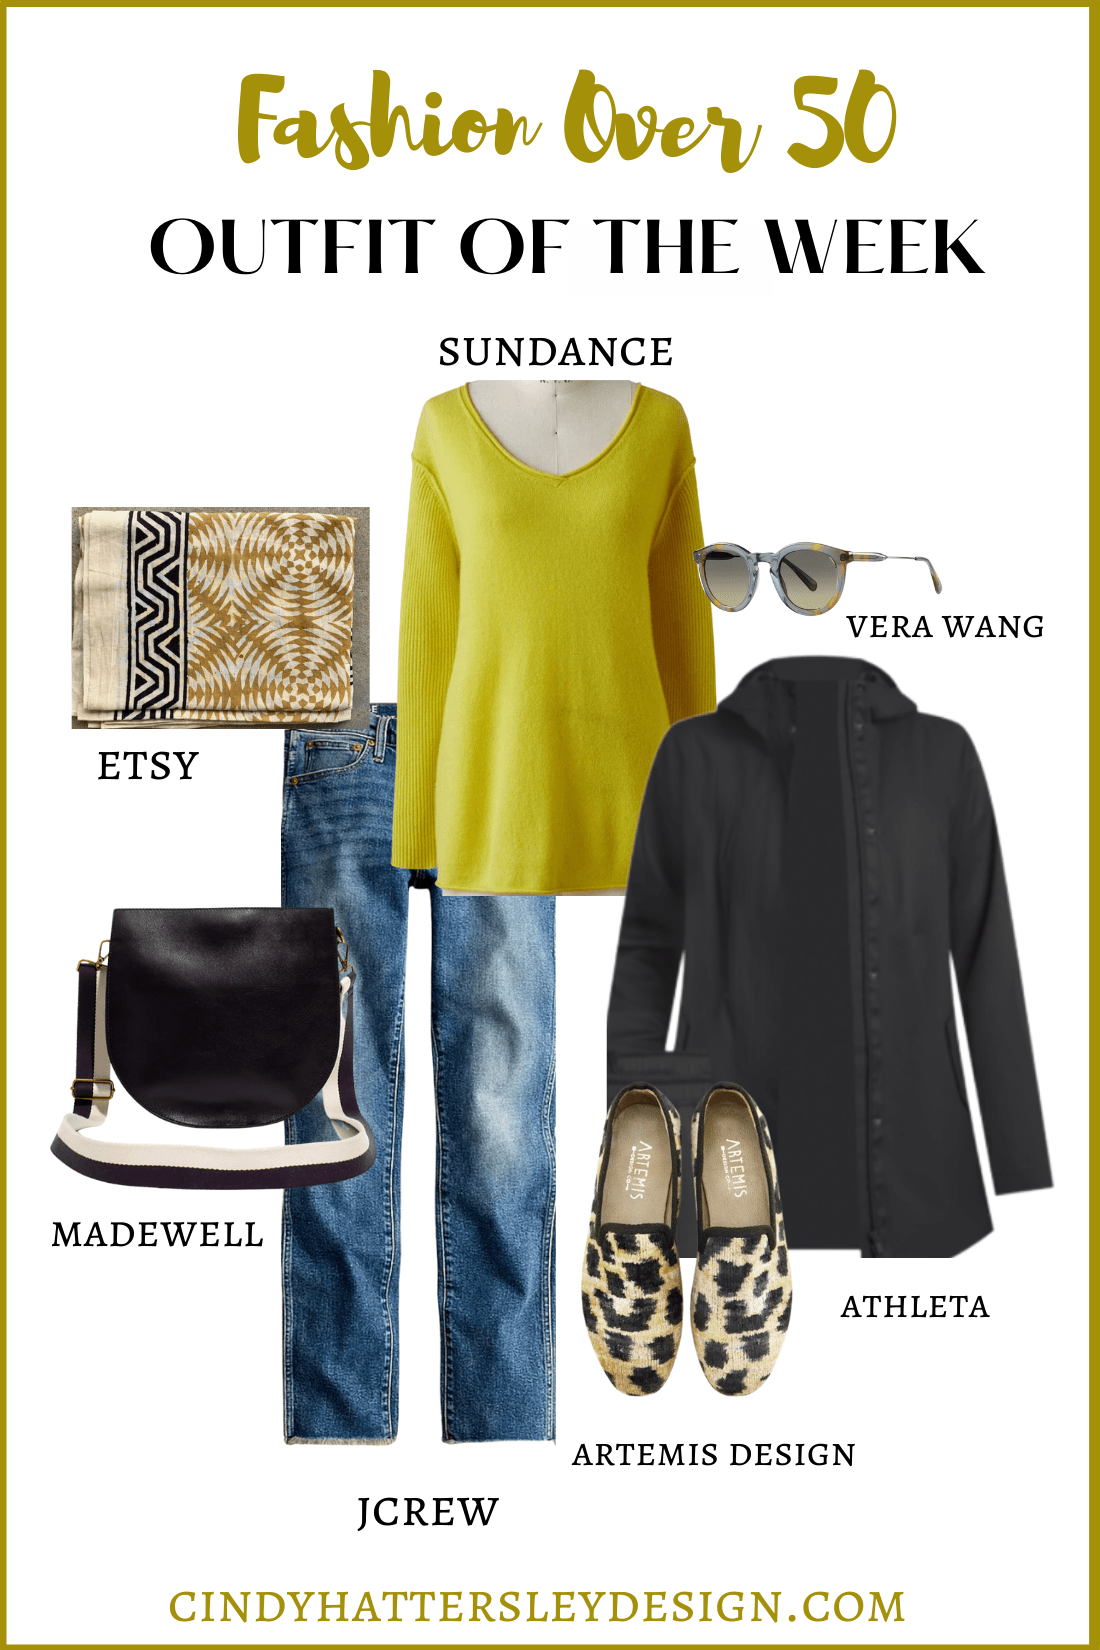 outfit of the week sundance, JCREW, MADEWELL, ARTEMIS DESIGN ETSY